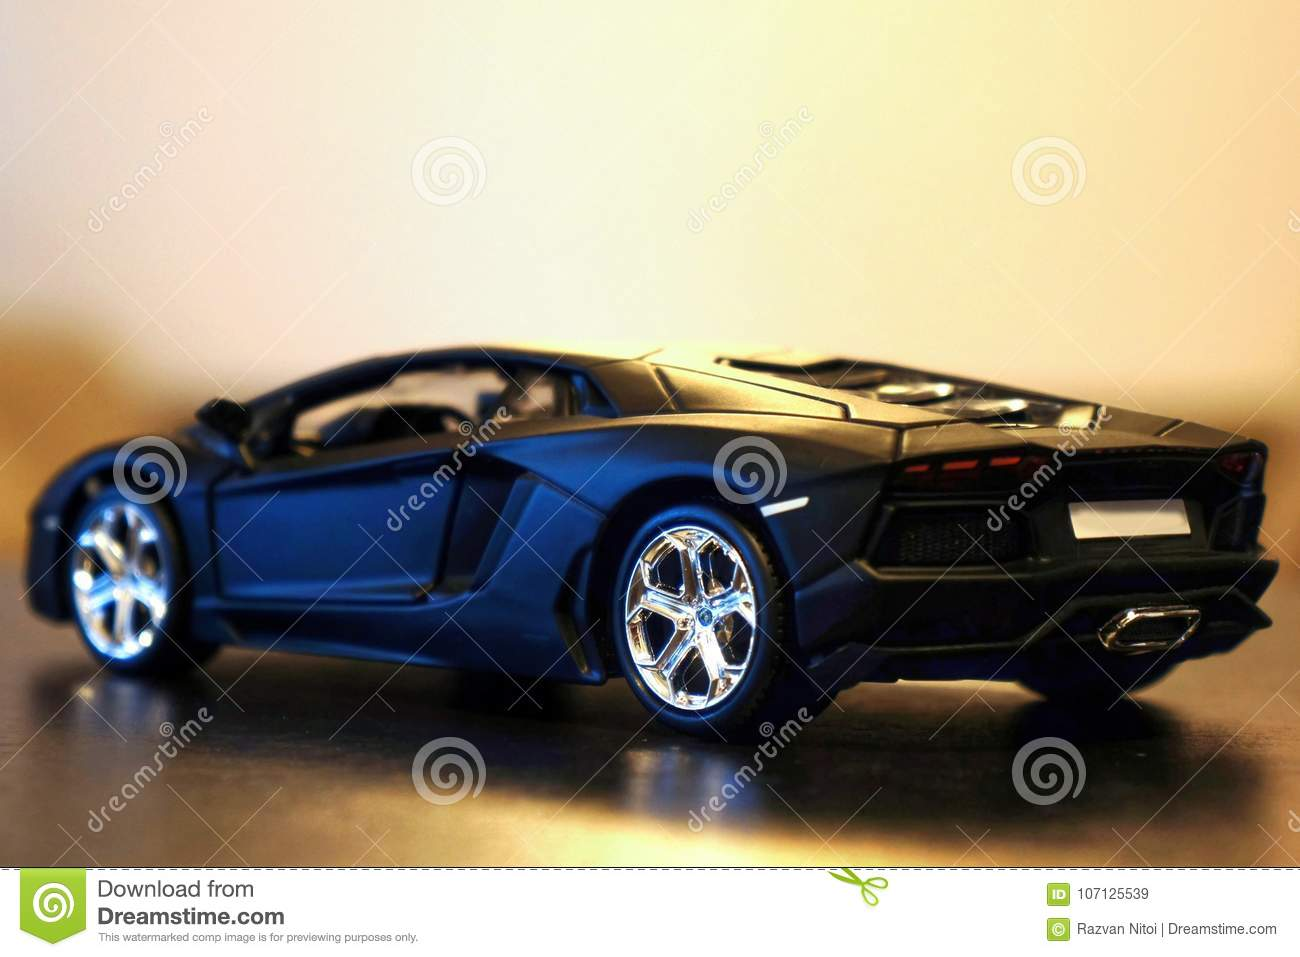 Lamborghini Aventador Lp700 4 Model Car Lateral Rear Editorial Stock